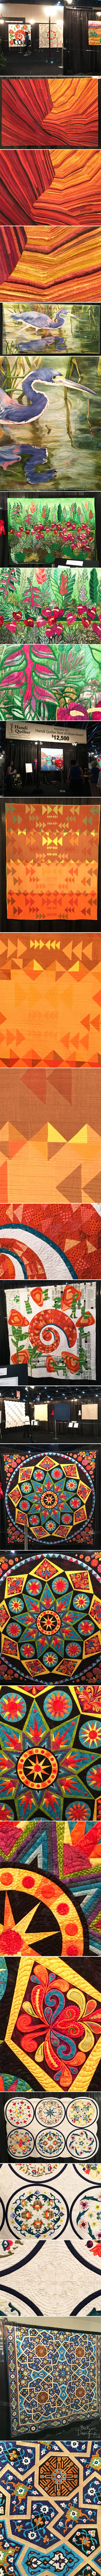 From the Balzer Designs Blog: Quilt Festival: Part Five #quilting